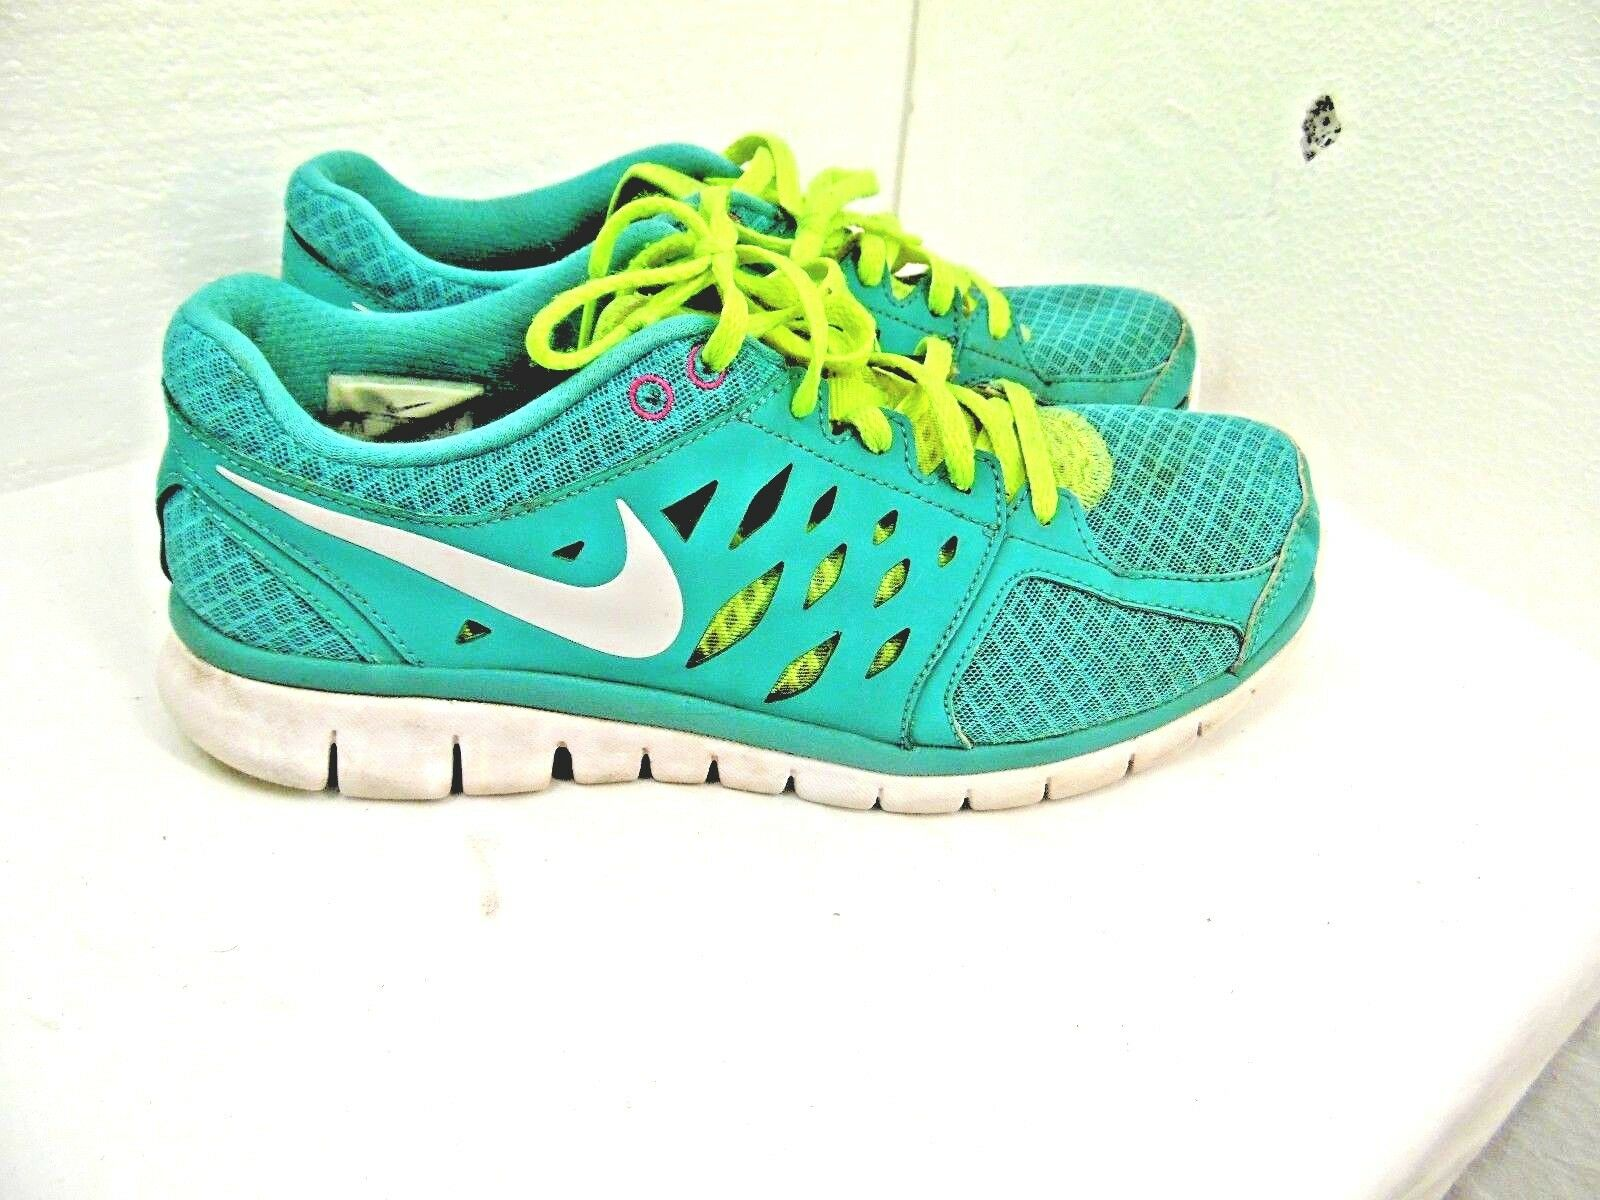 WOMENS ATHLETIC SHOES NIKE BRAND TURQUOISE COLOR SIZE 9 1/2 FLEX RUN   R11 The most popular shoes for men and women